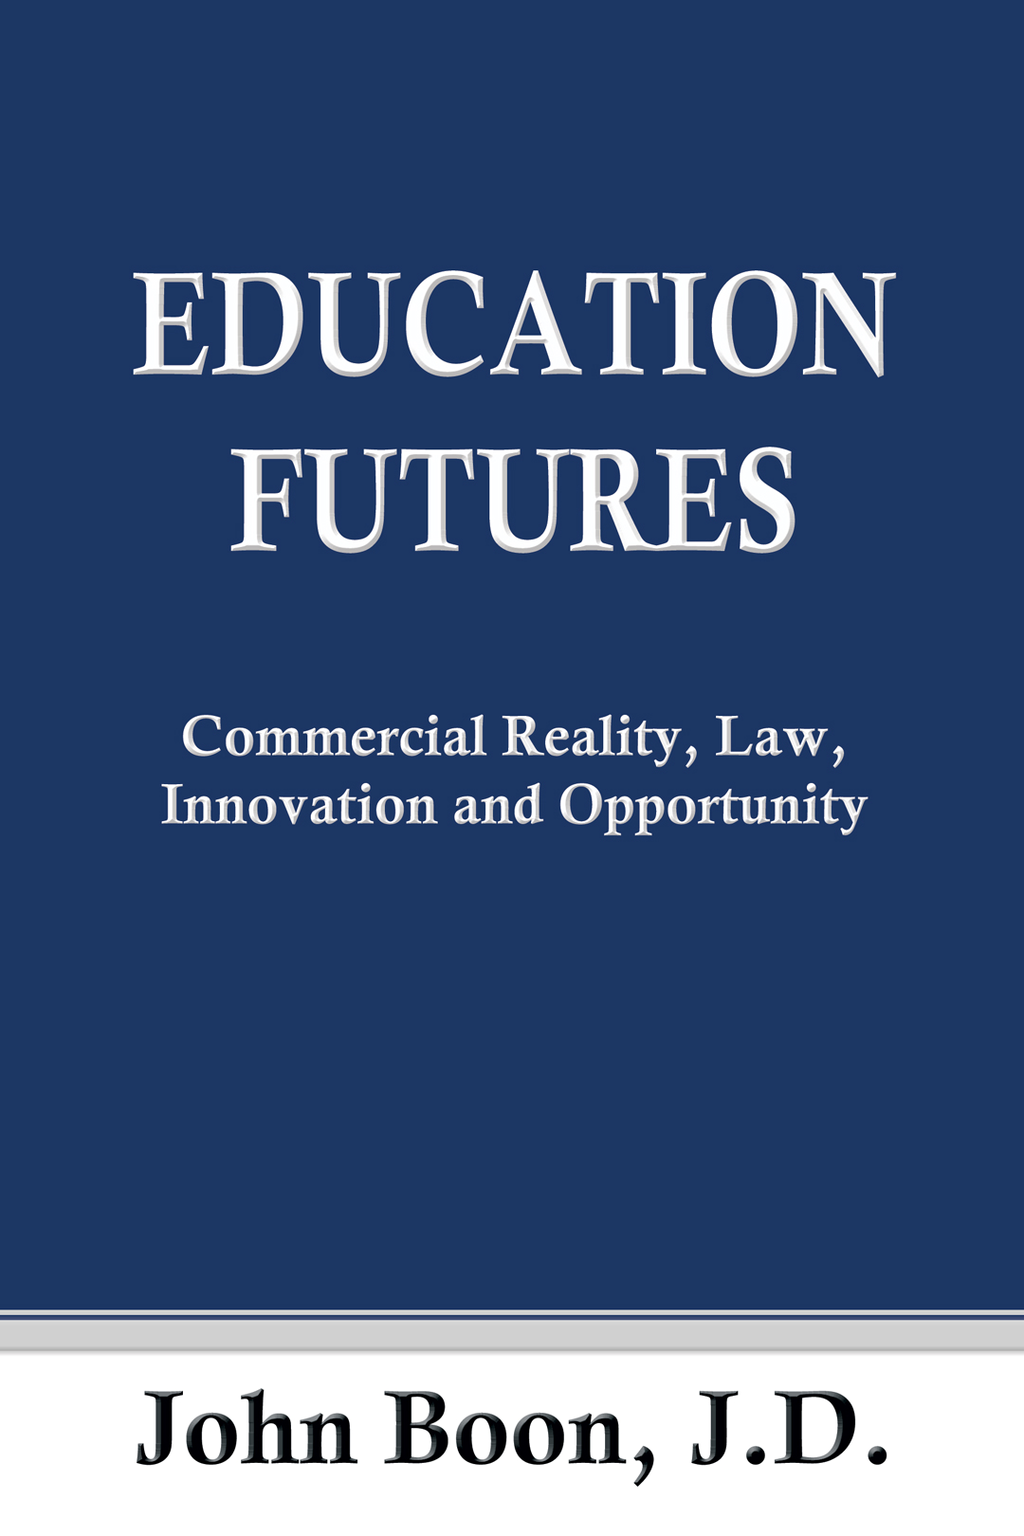 Education Futures: Commercial Reality, Law, Innovation and Opportunity By: John Boon J.D.